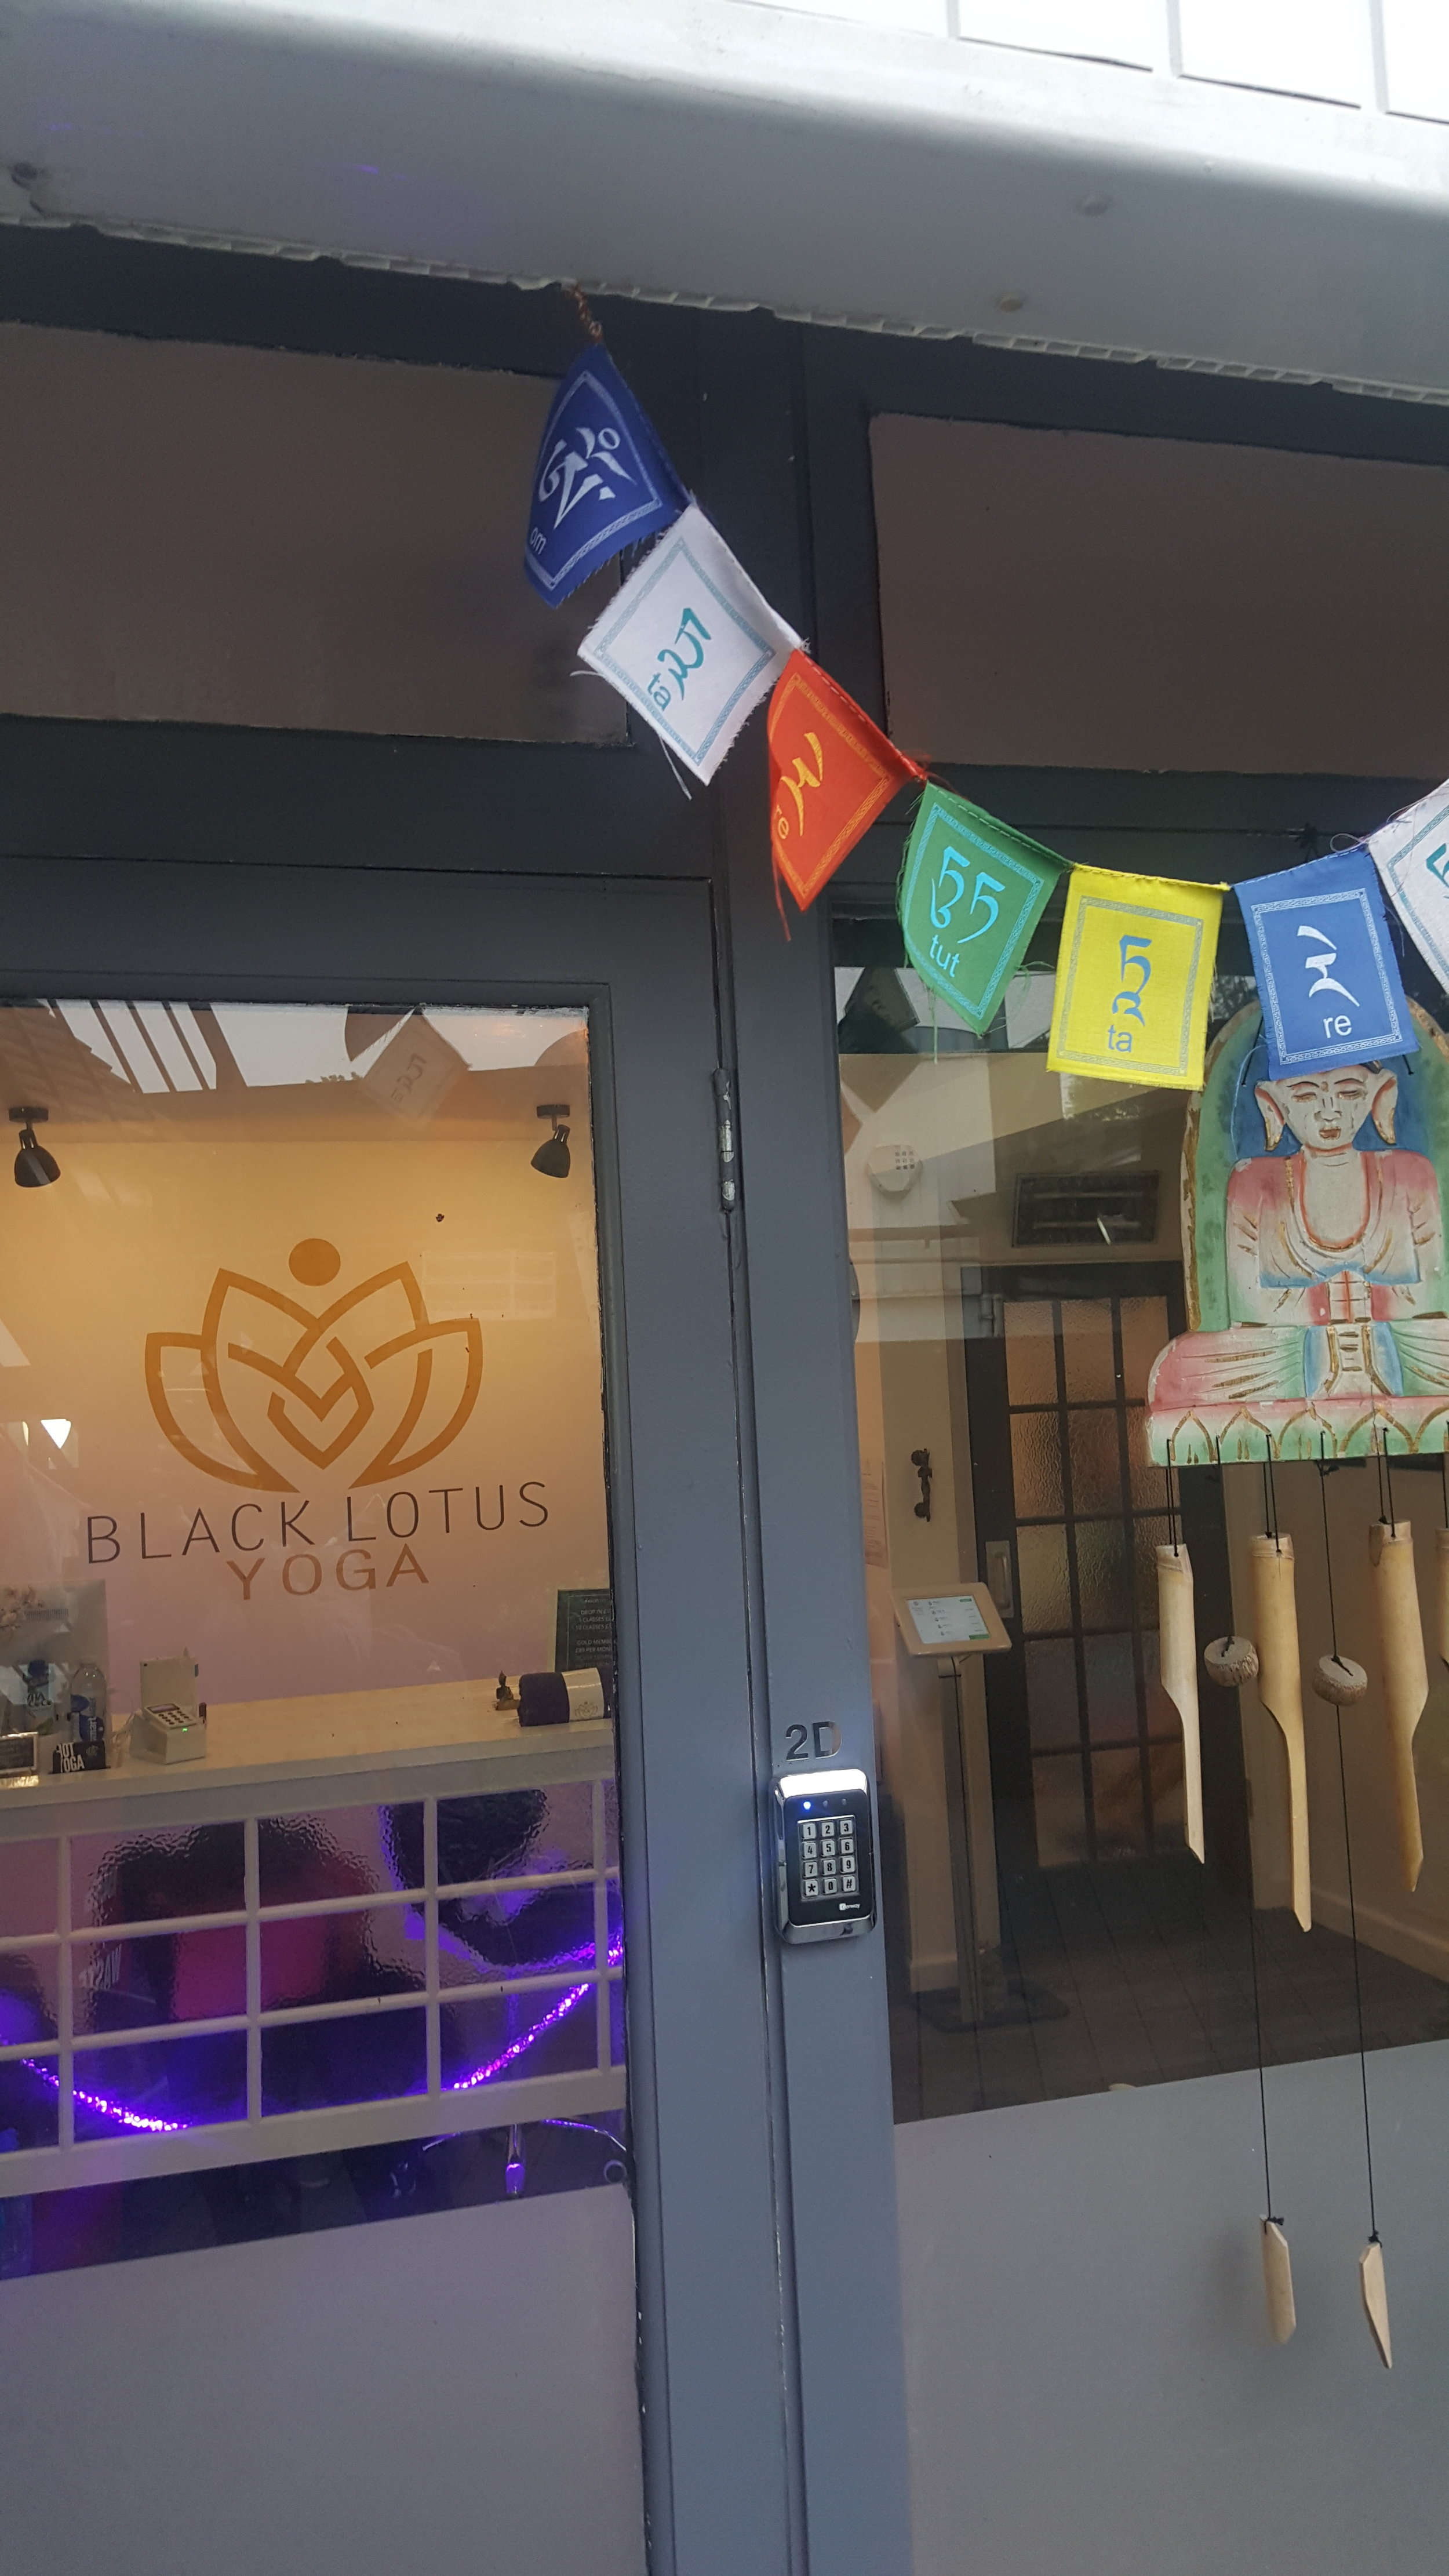 The Black Lotus studio has a great energy, is very welcoming and is flooded with natural light.